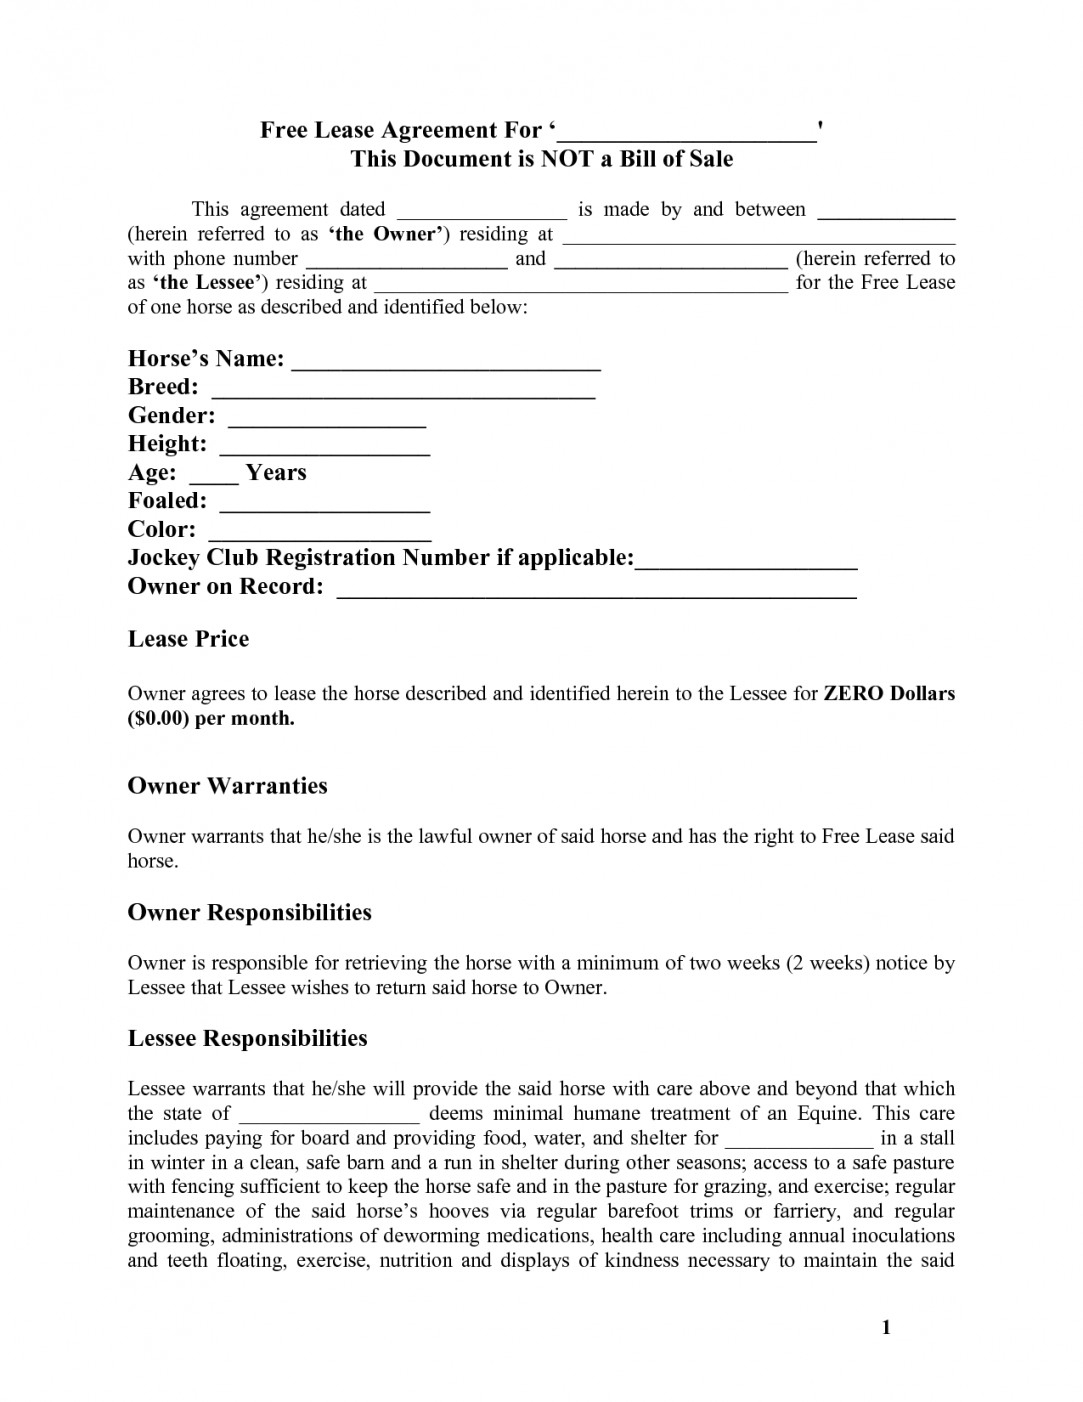 Vehicle Lease Agreement Template Free | Lostranquillos - Free Printable Vehicle Lease Agreement